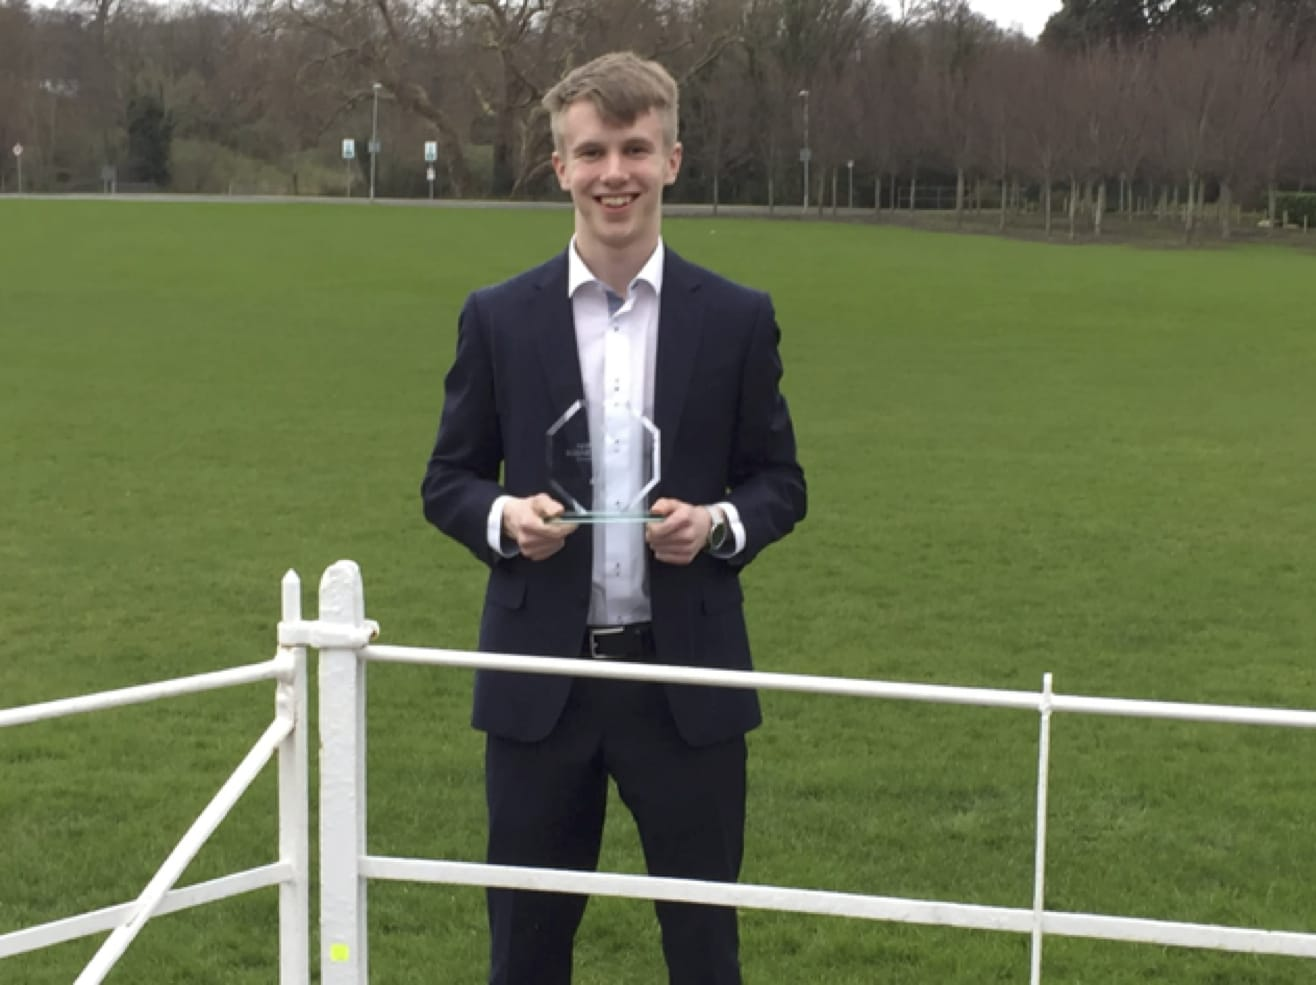 March 2017: Jack O Connor, 6th Year Student award best Individual student at the BT Young Scientist Business Bootcamp